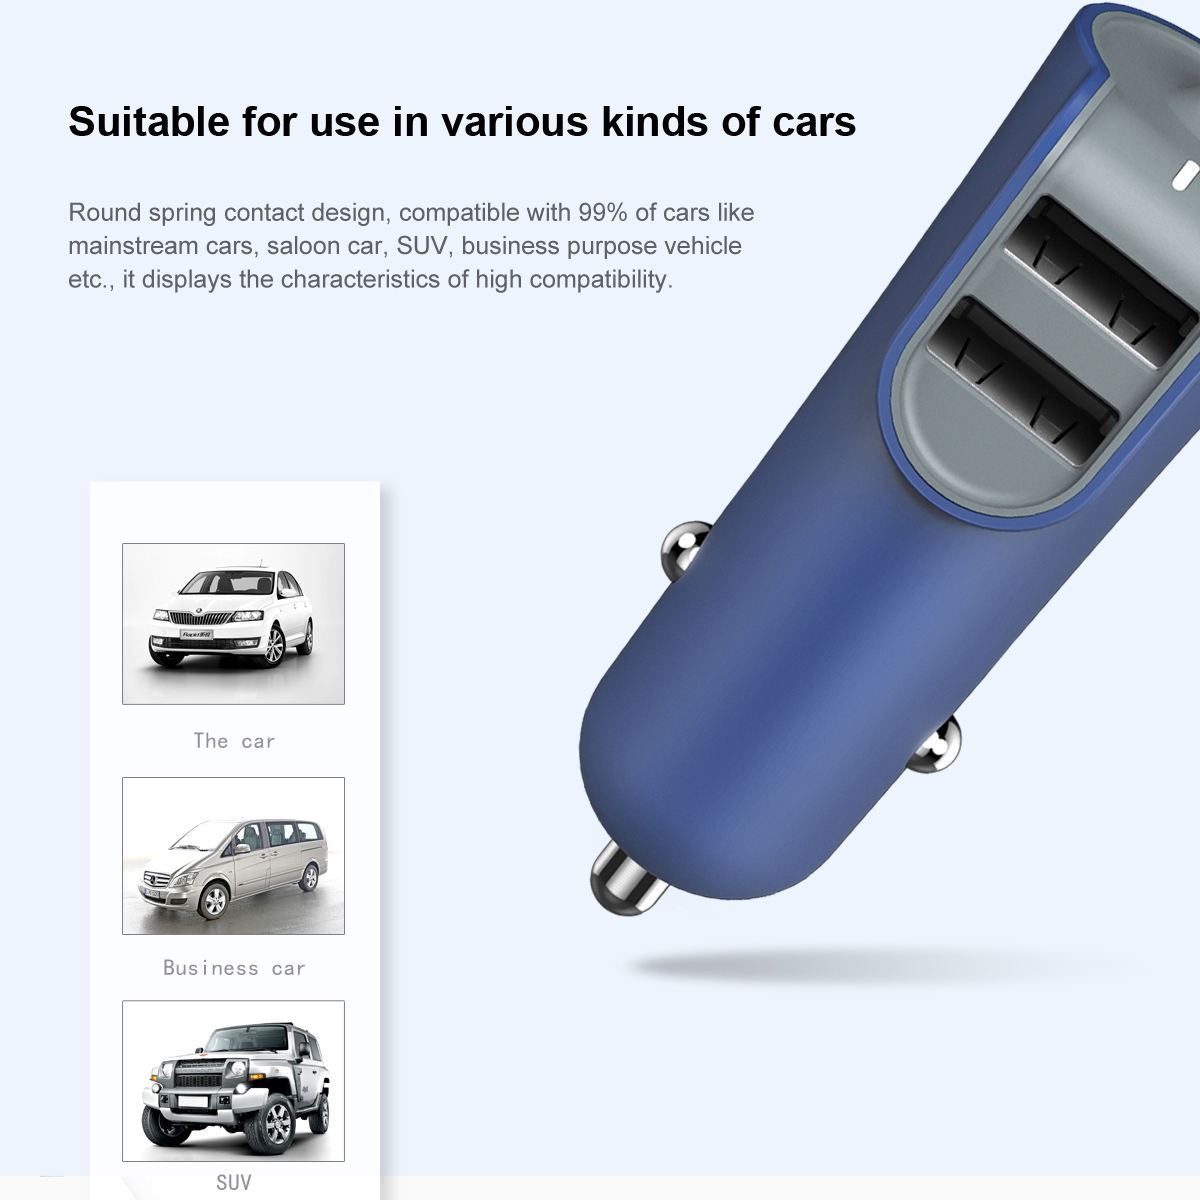 Baseus Car-charger For IPhone With 2 USB Ports